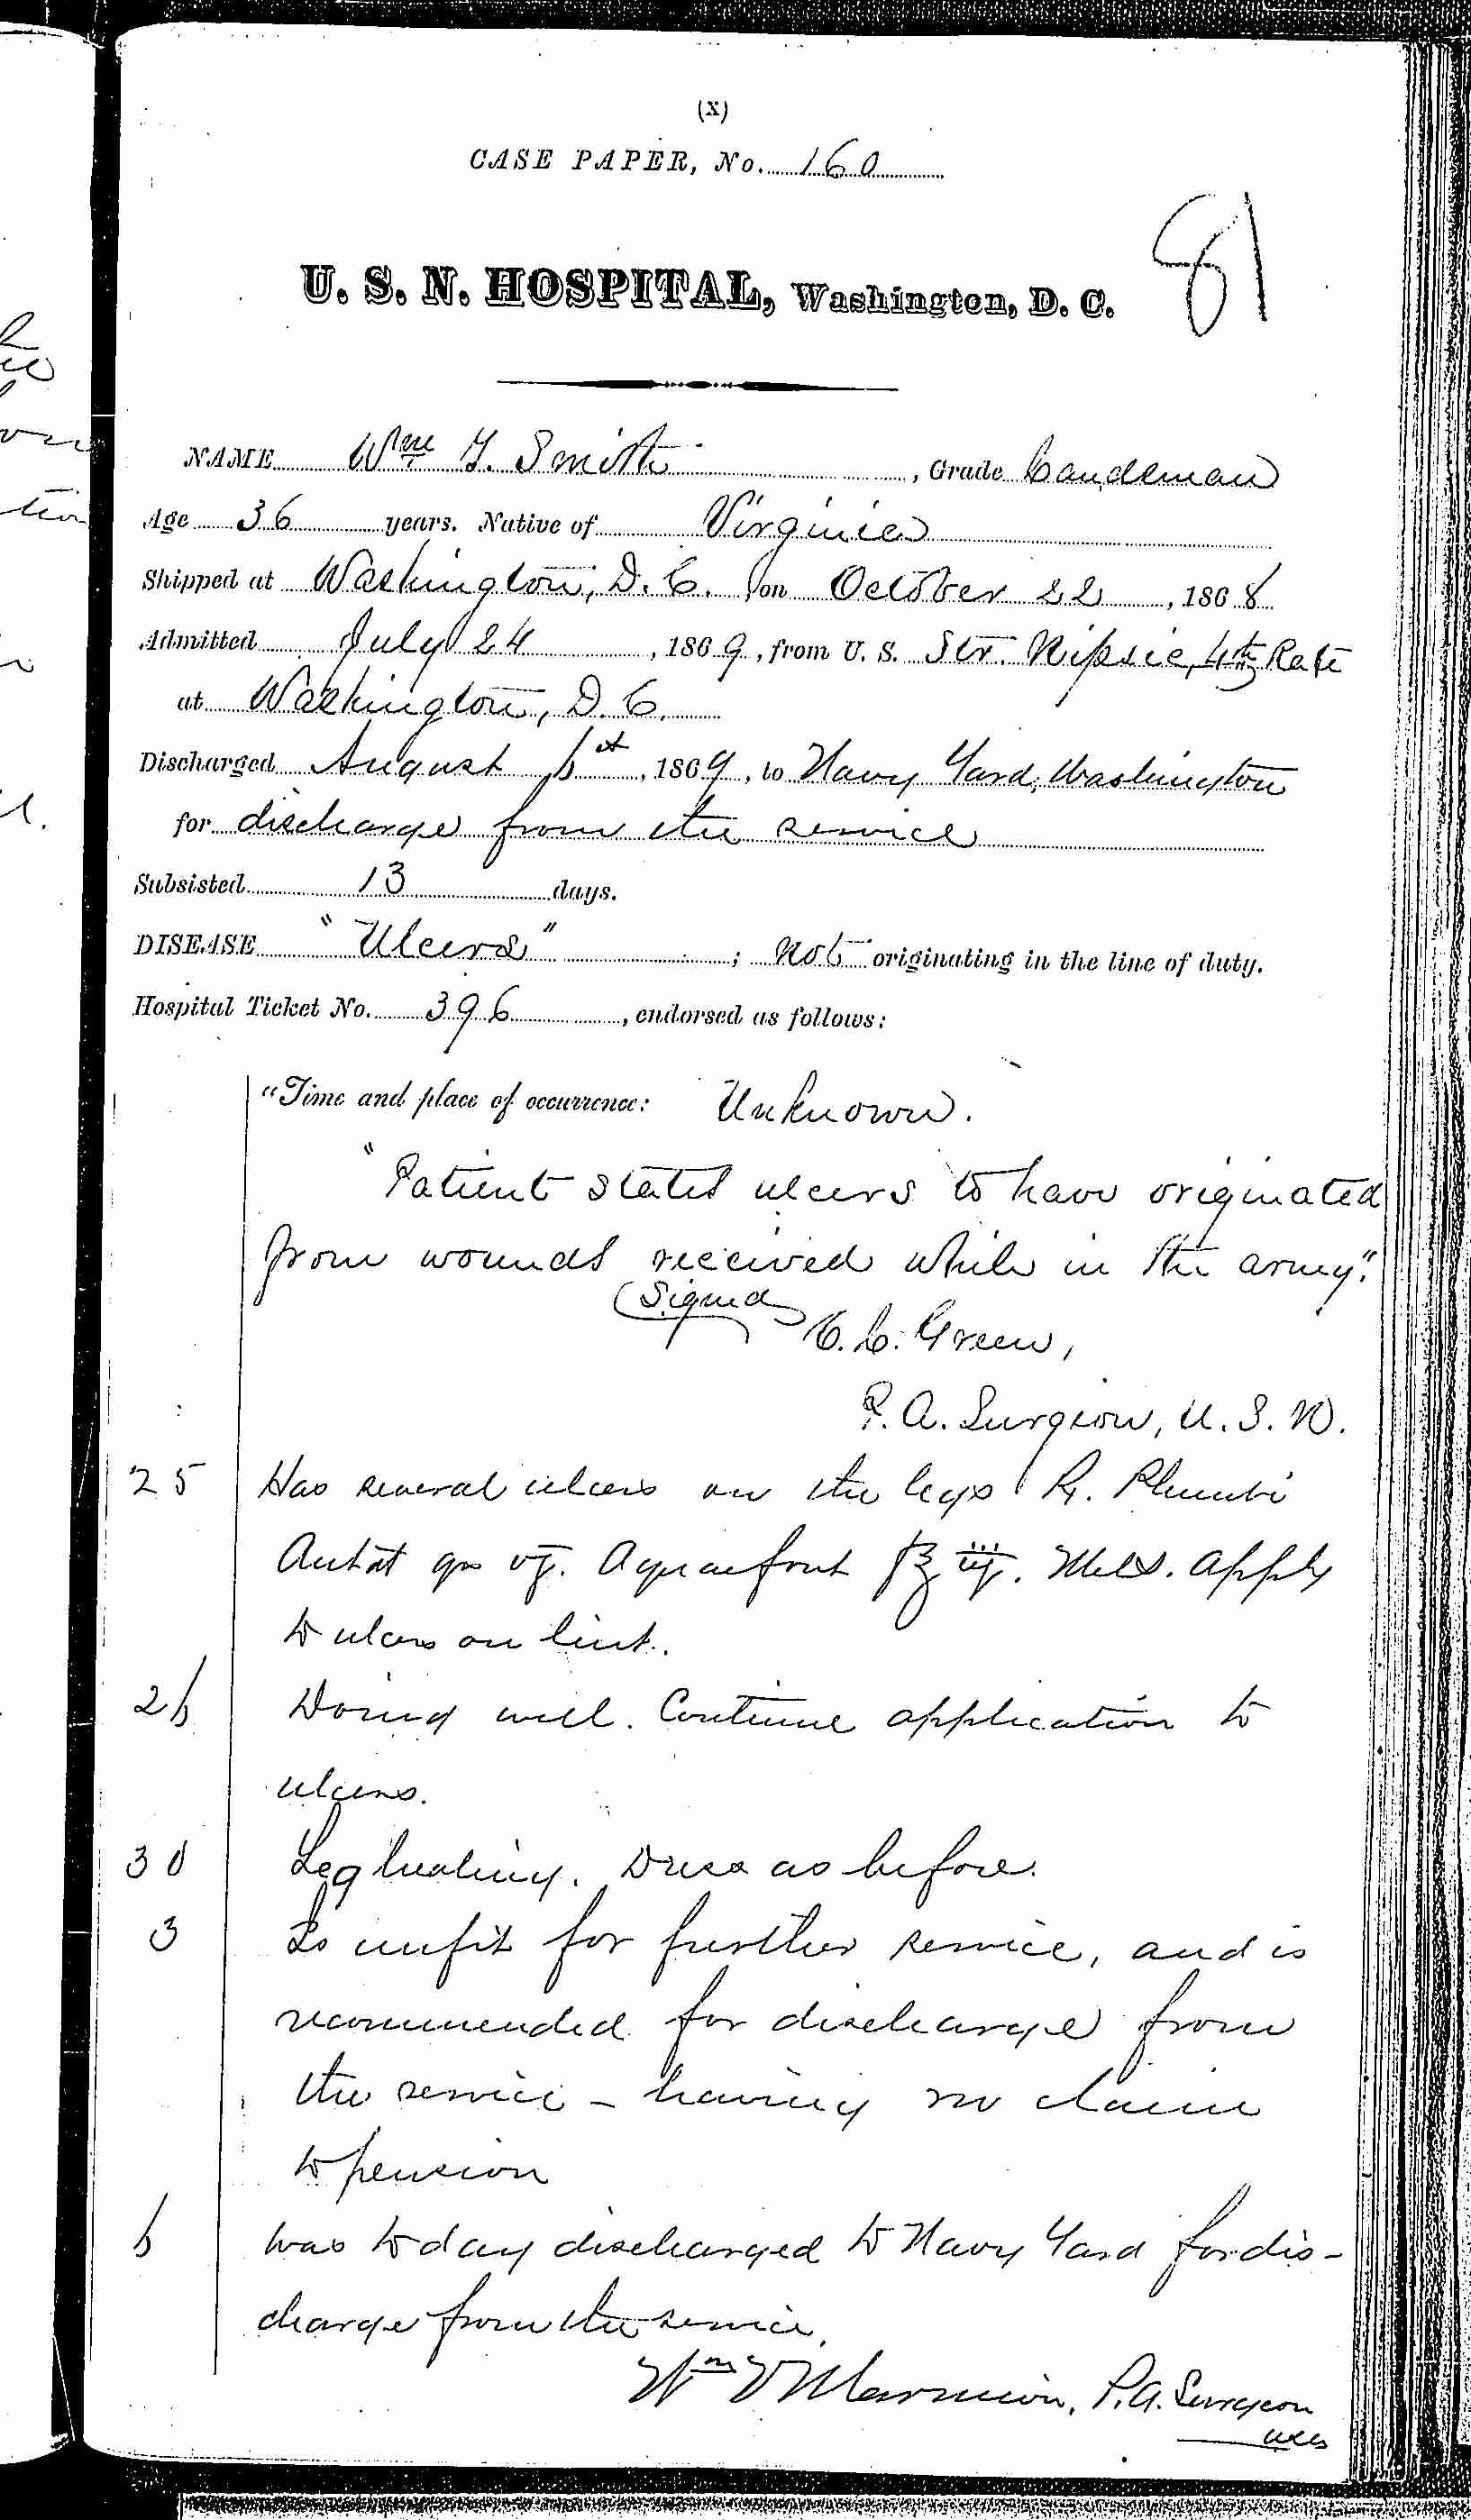 Entry for William T. Smith (page 1 of 1) in the log Hospital Tickets and Case Papers - Naval Hospital - Washington, D.C. - 1868-69